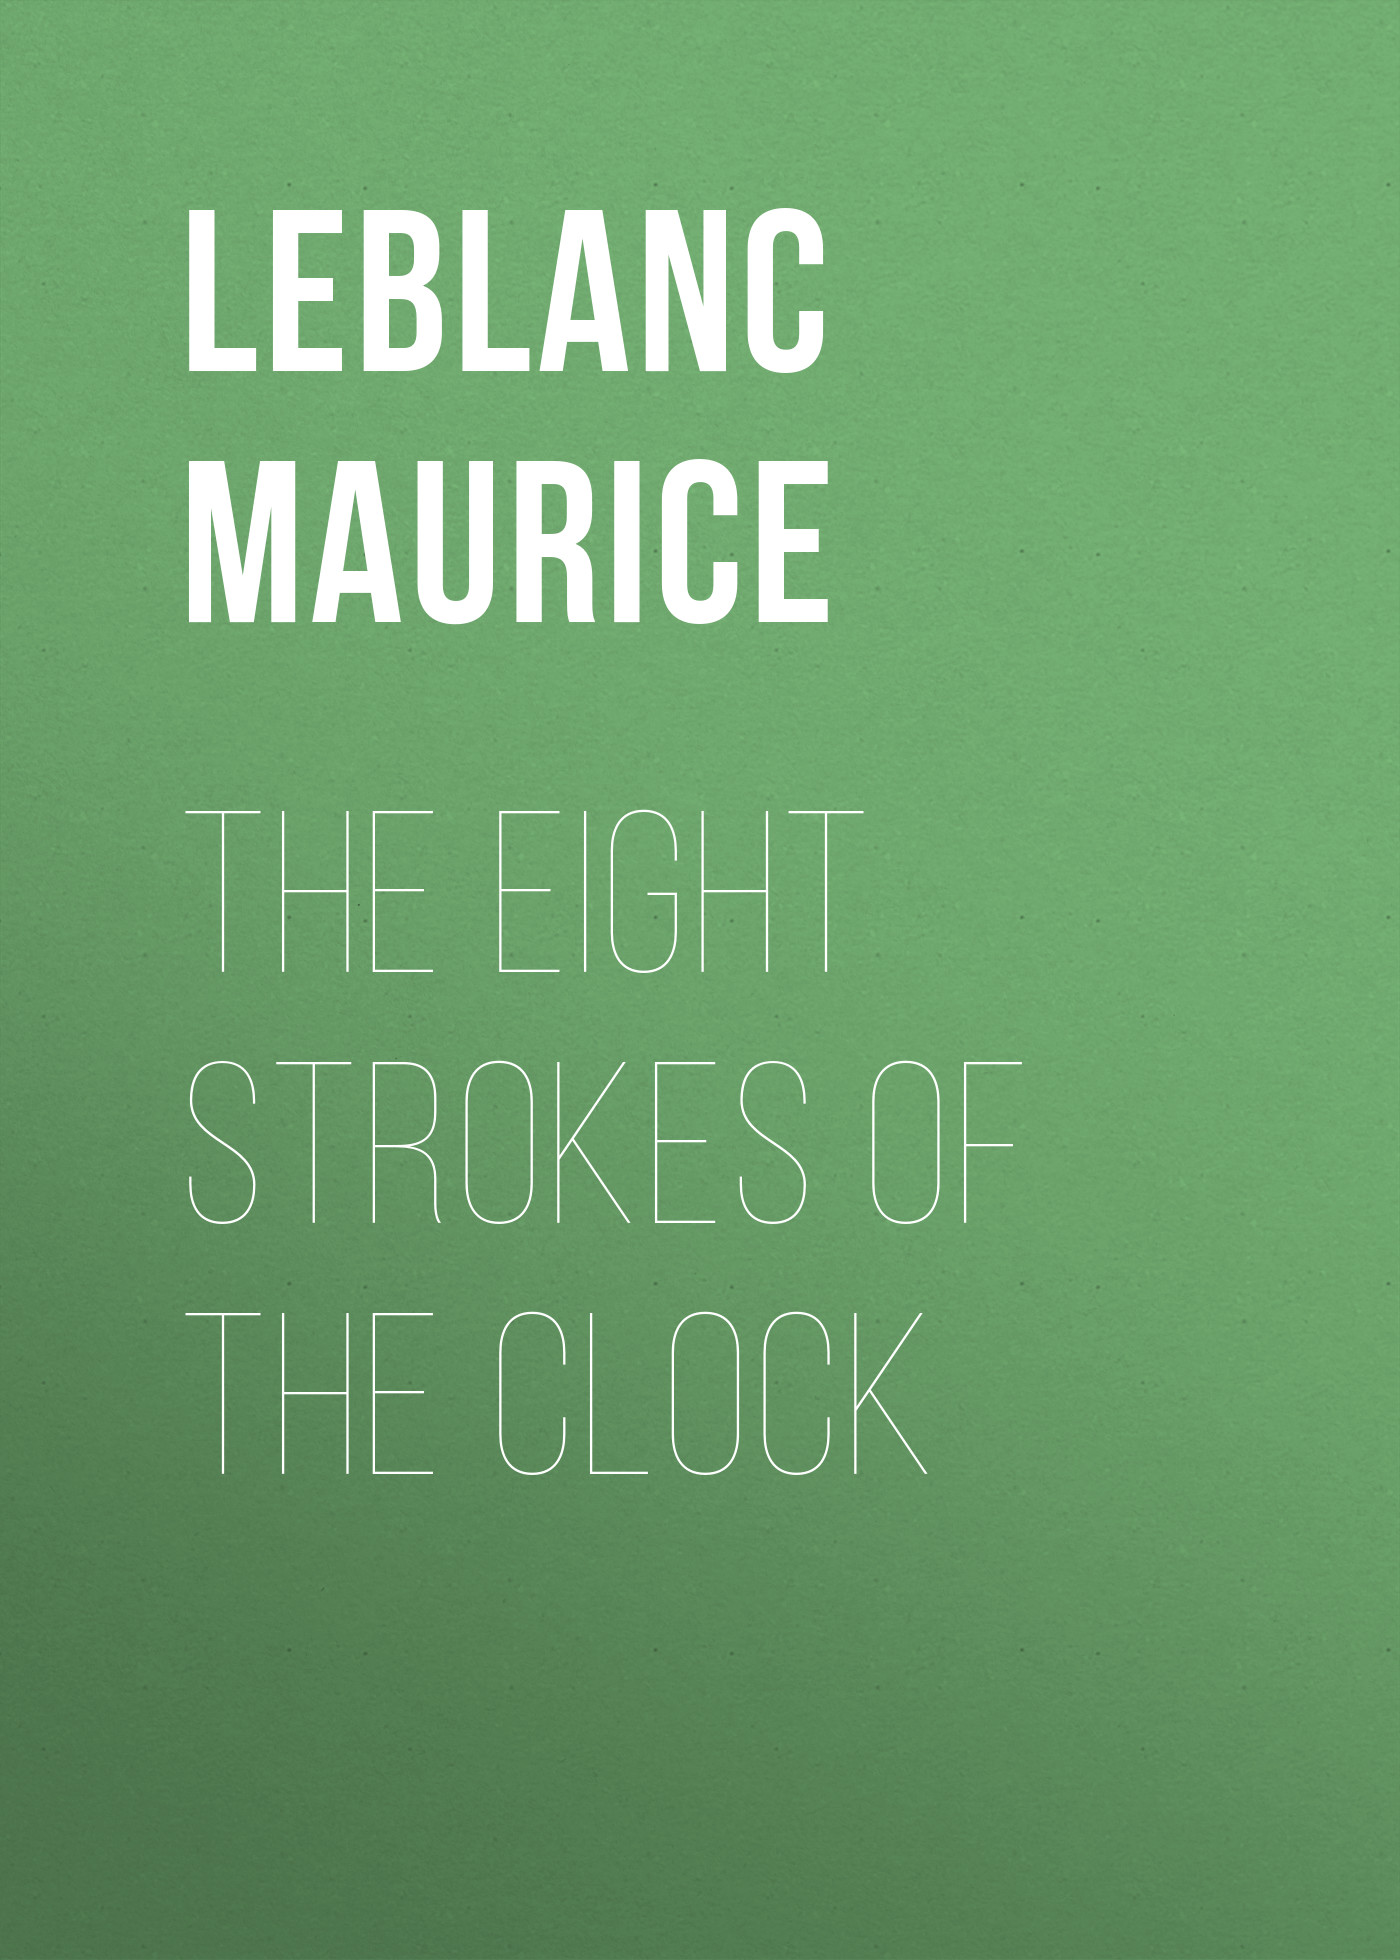 Leblanc Maurice The Eight Strokes of the Clock leblanc maurice the confessions of arsène lupin